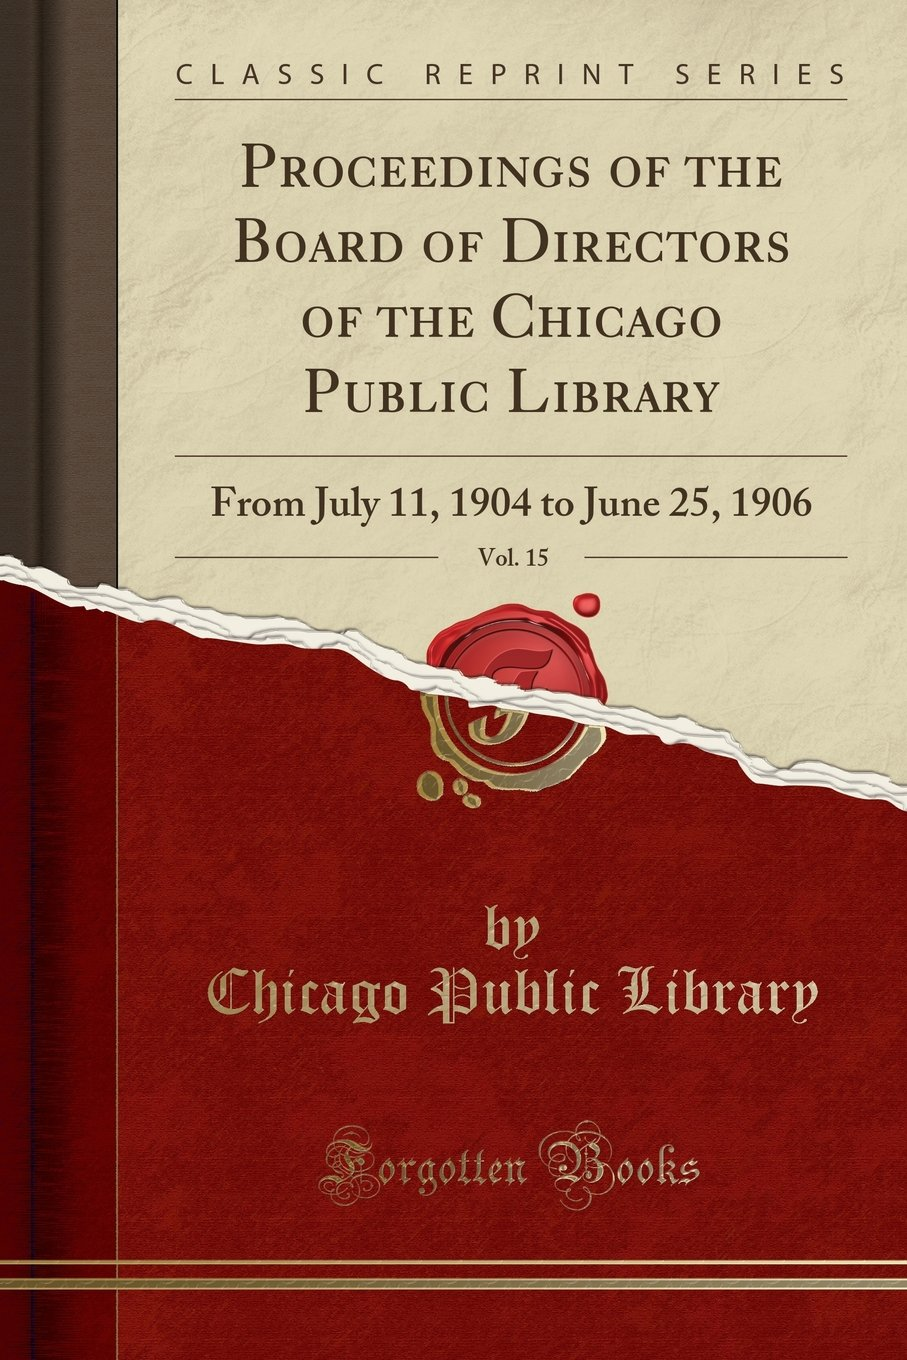 Download Proceedings of the Board of Directors of the Chicago Public Library, Vol. 15: From July 11, 1904 to June 25, 1906 (Classic Reprint) pdf